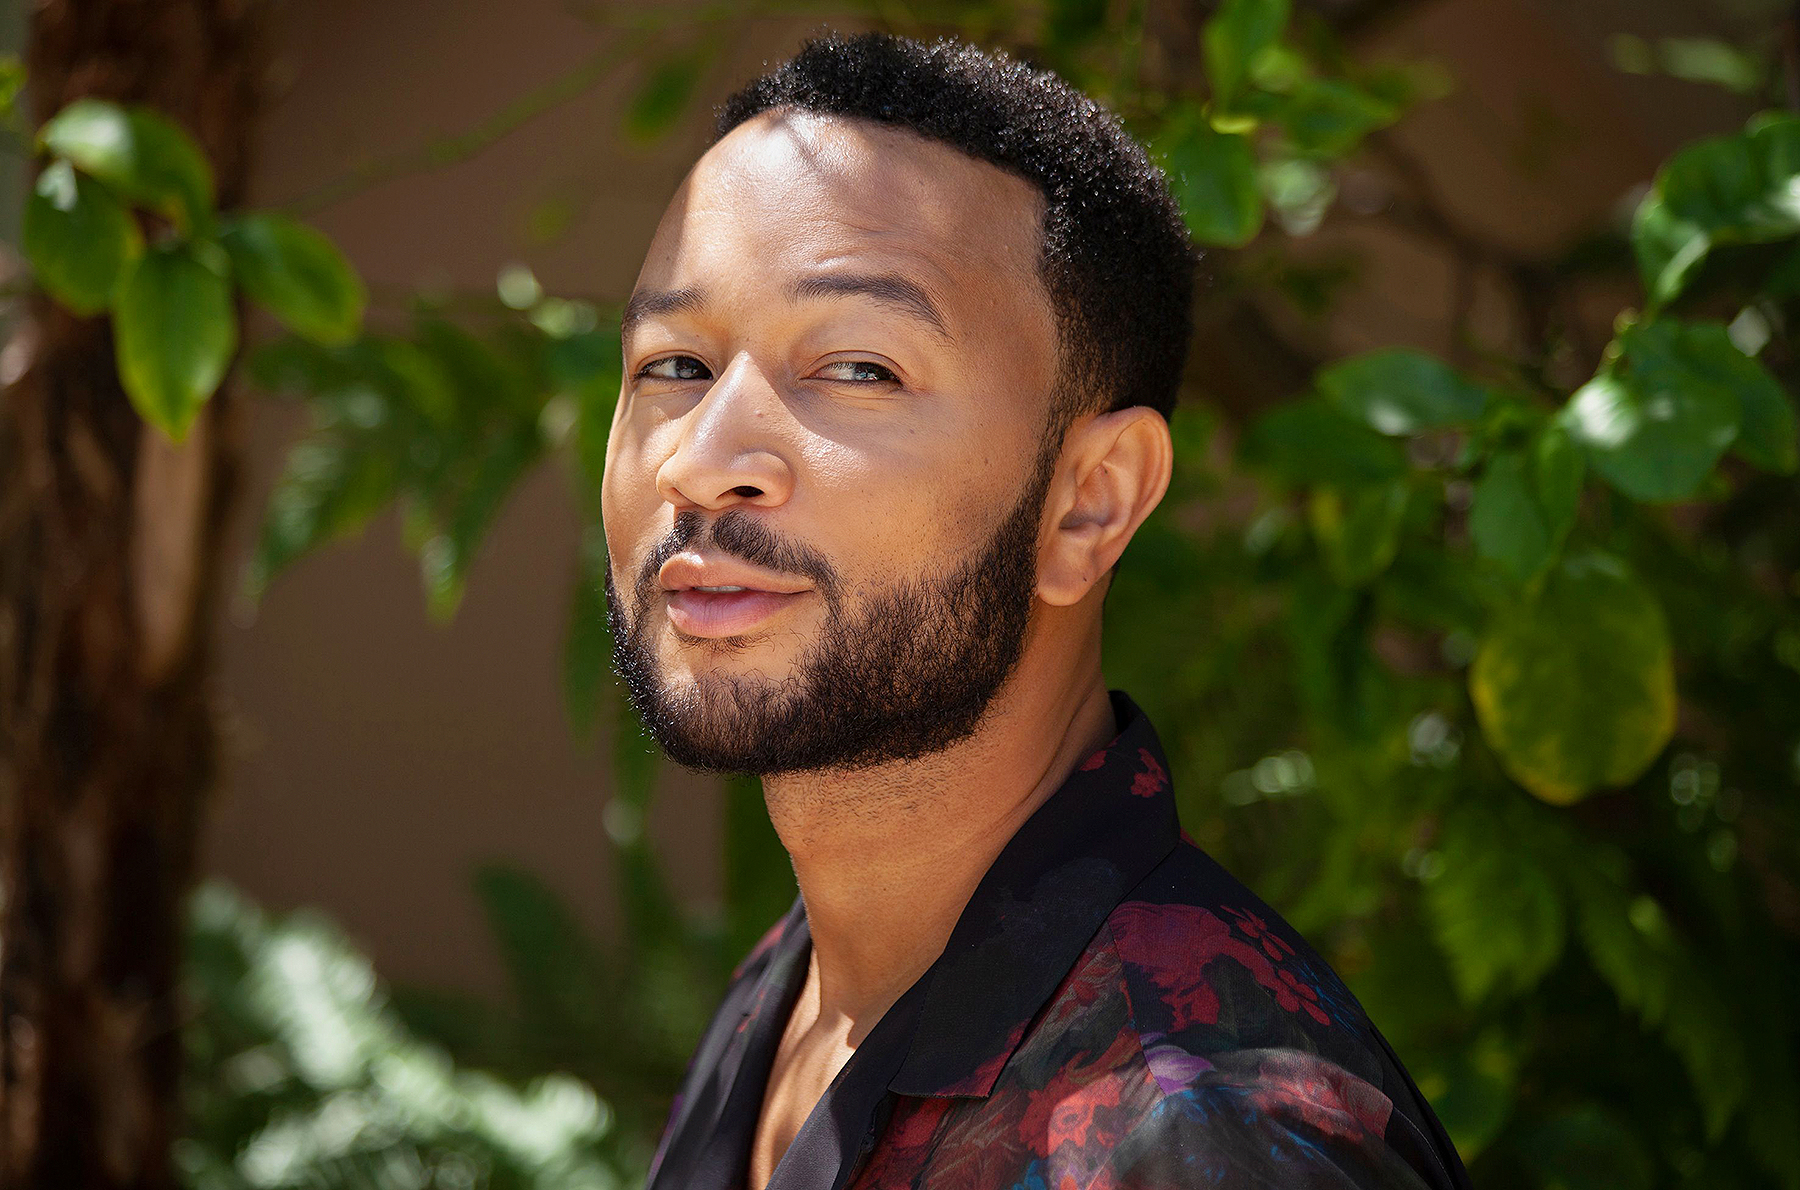 John Legend Portrait Session, Beverly Hills, United States - 13 Jun 2020